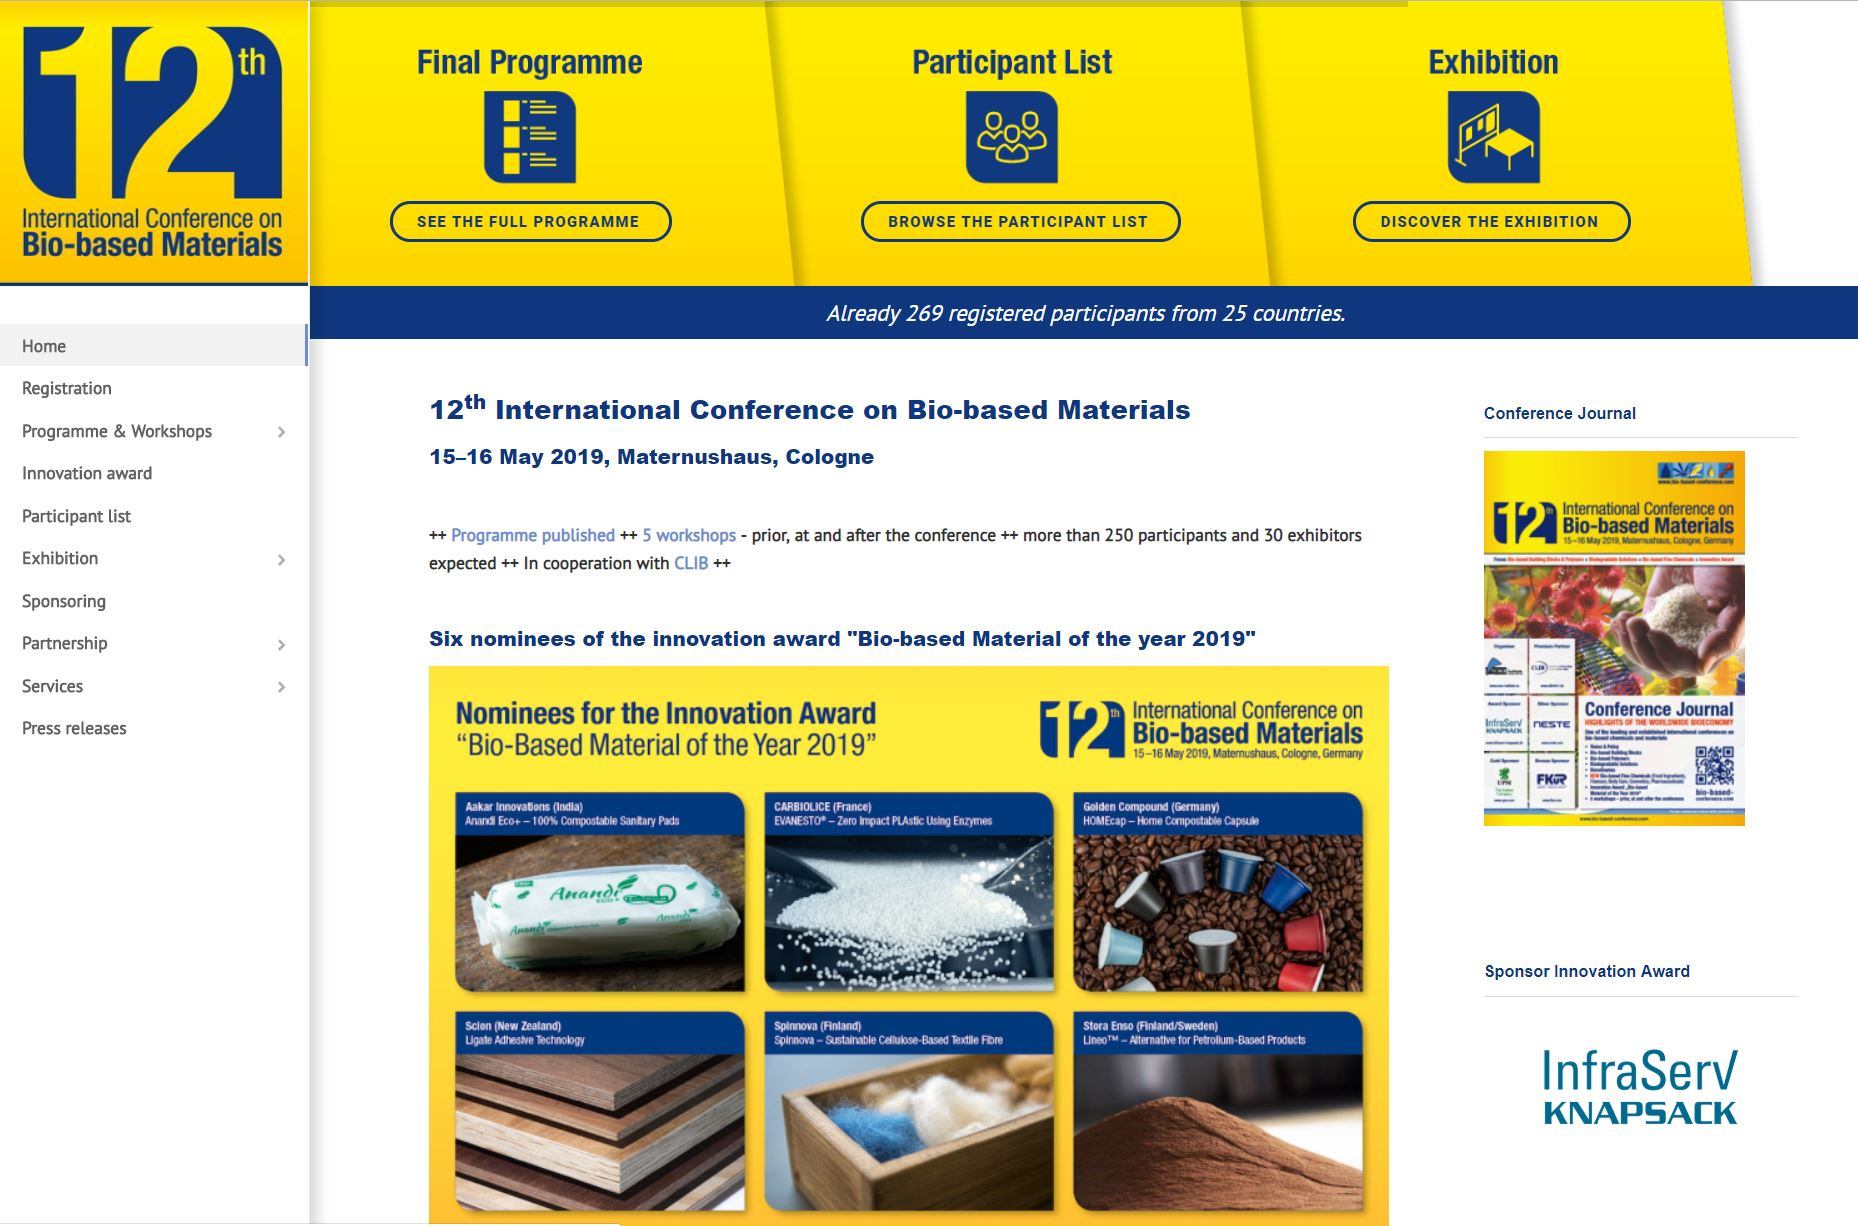 12th International Conference on Bio-based Materials — Enabling